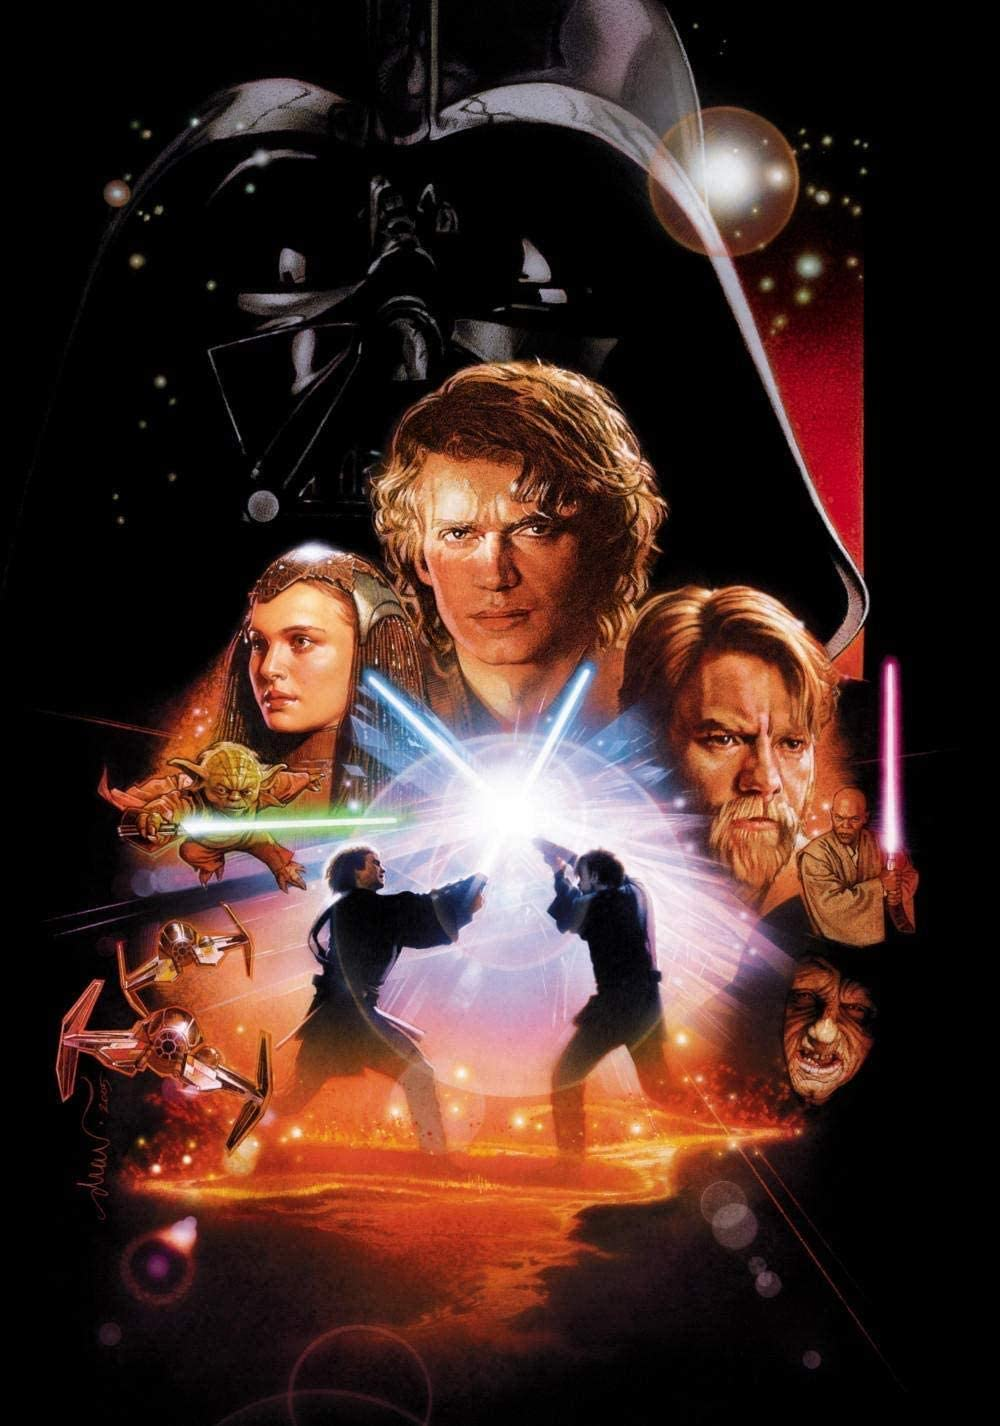 Amazon Com 1000 Pieces Jigsaw Wooden Puzzle Star Wars Episode Iii Revenge Of The Sith Funny Jigsaw Puzzles Educational Games Gift Puzzle Kids Toy 75x50cm Toys Games